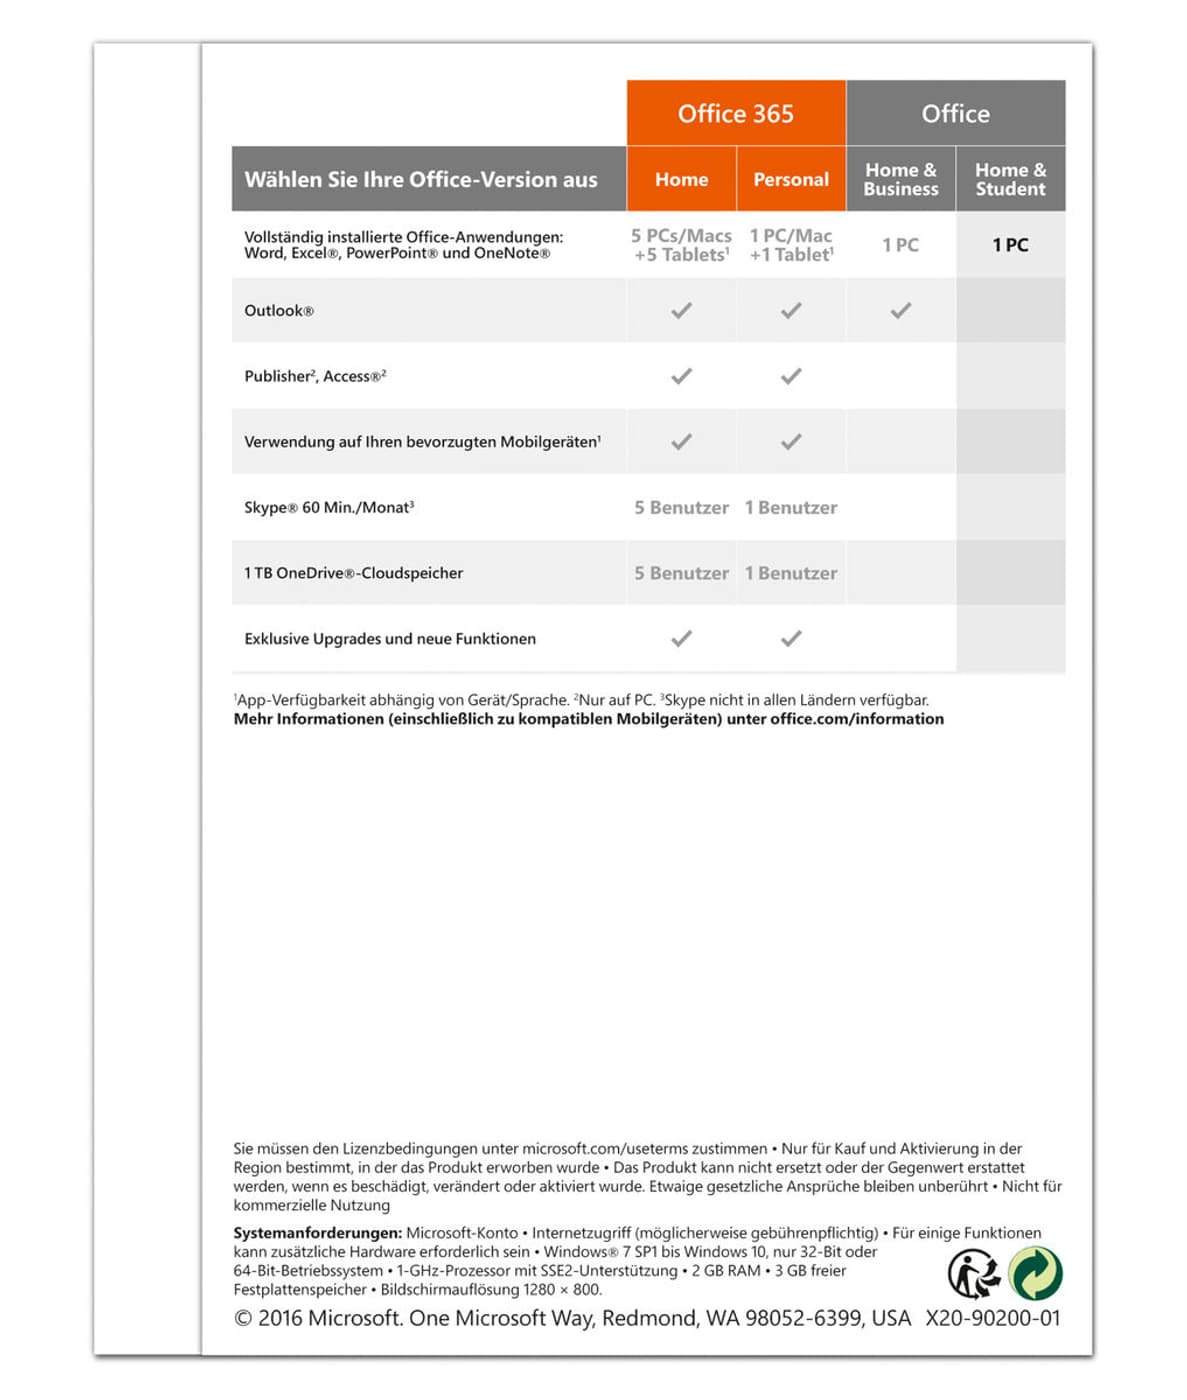 Microsoft office 2016 home and student vs business